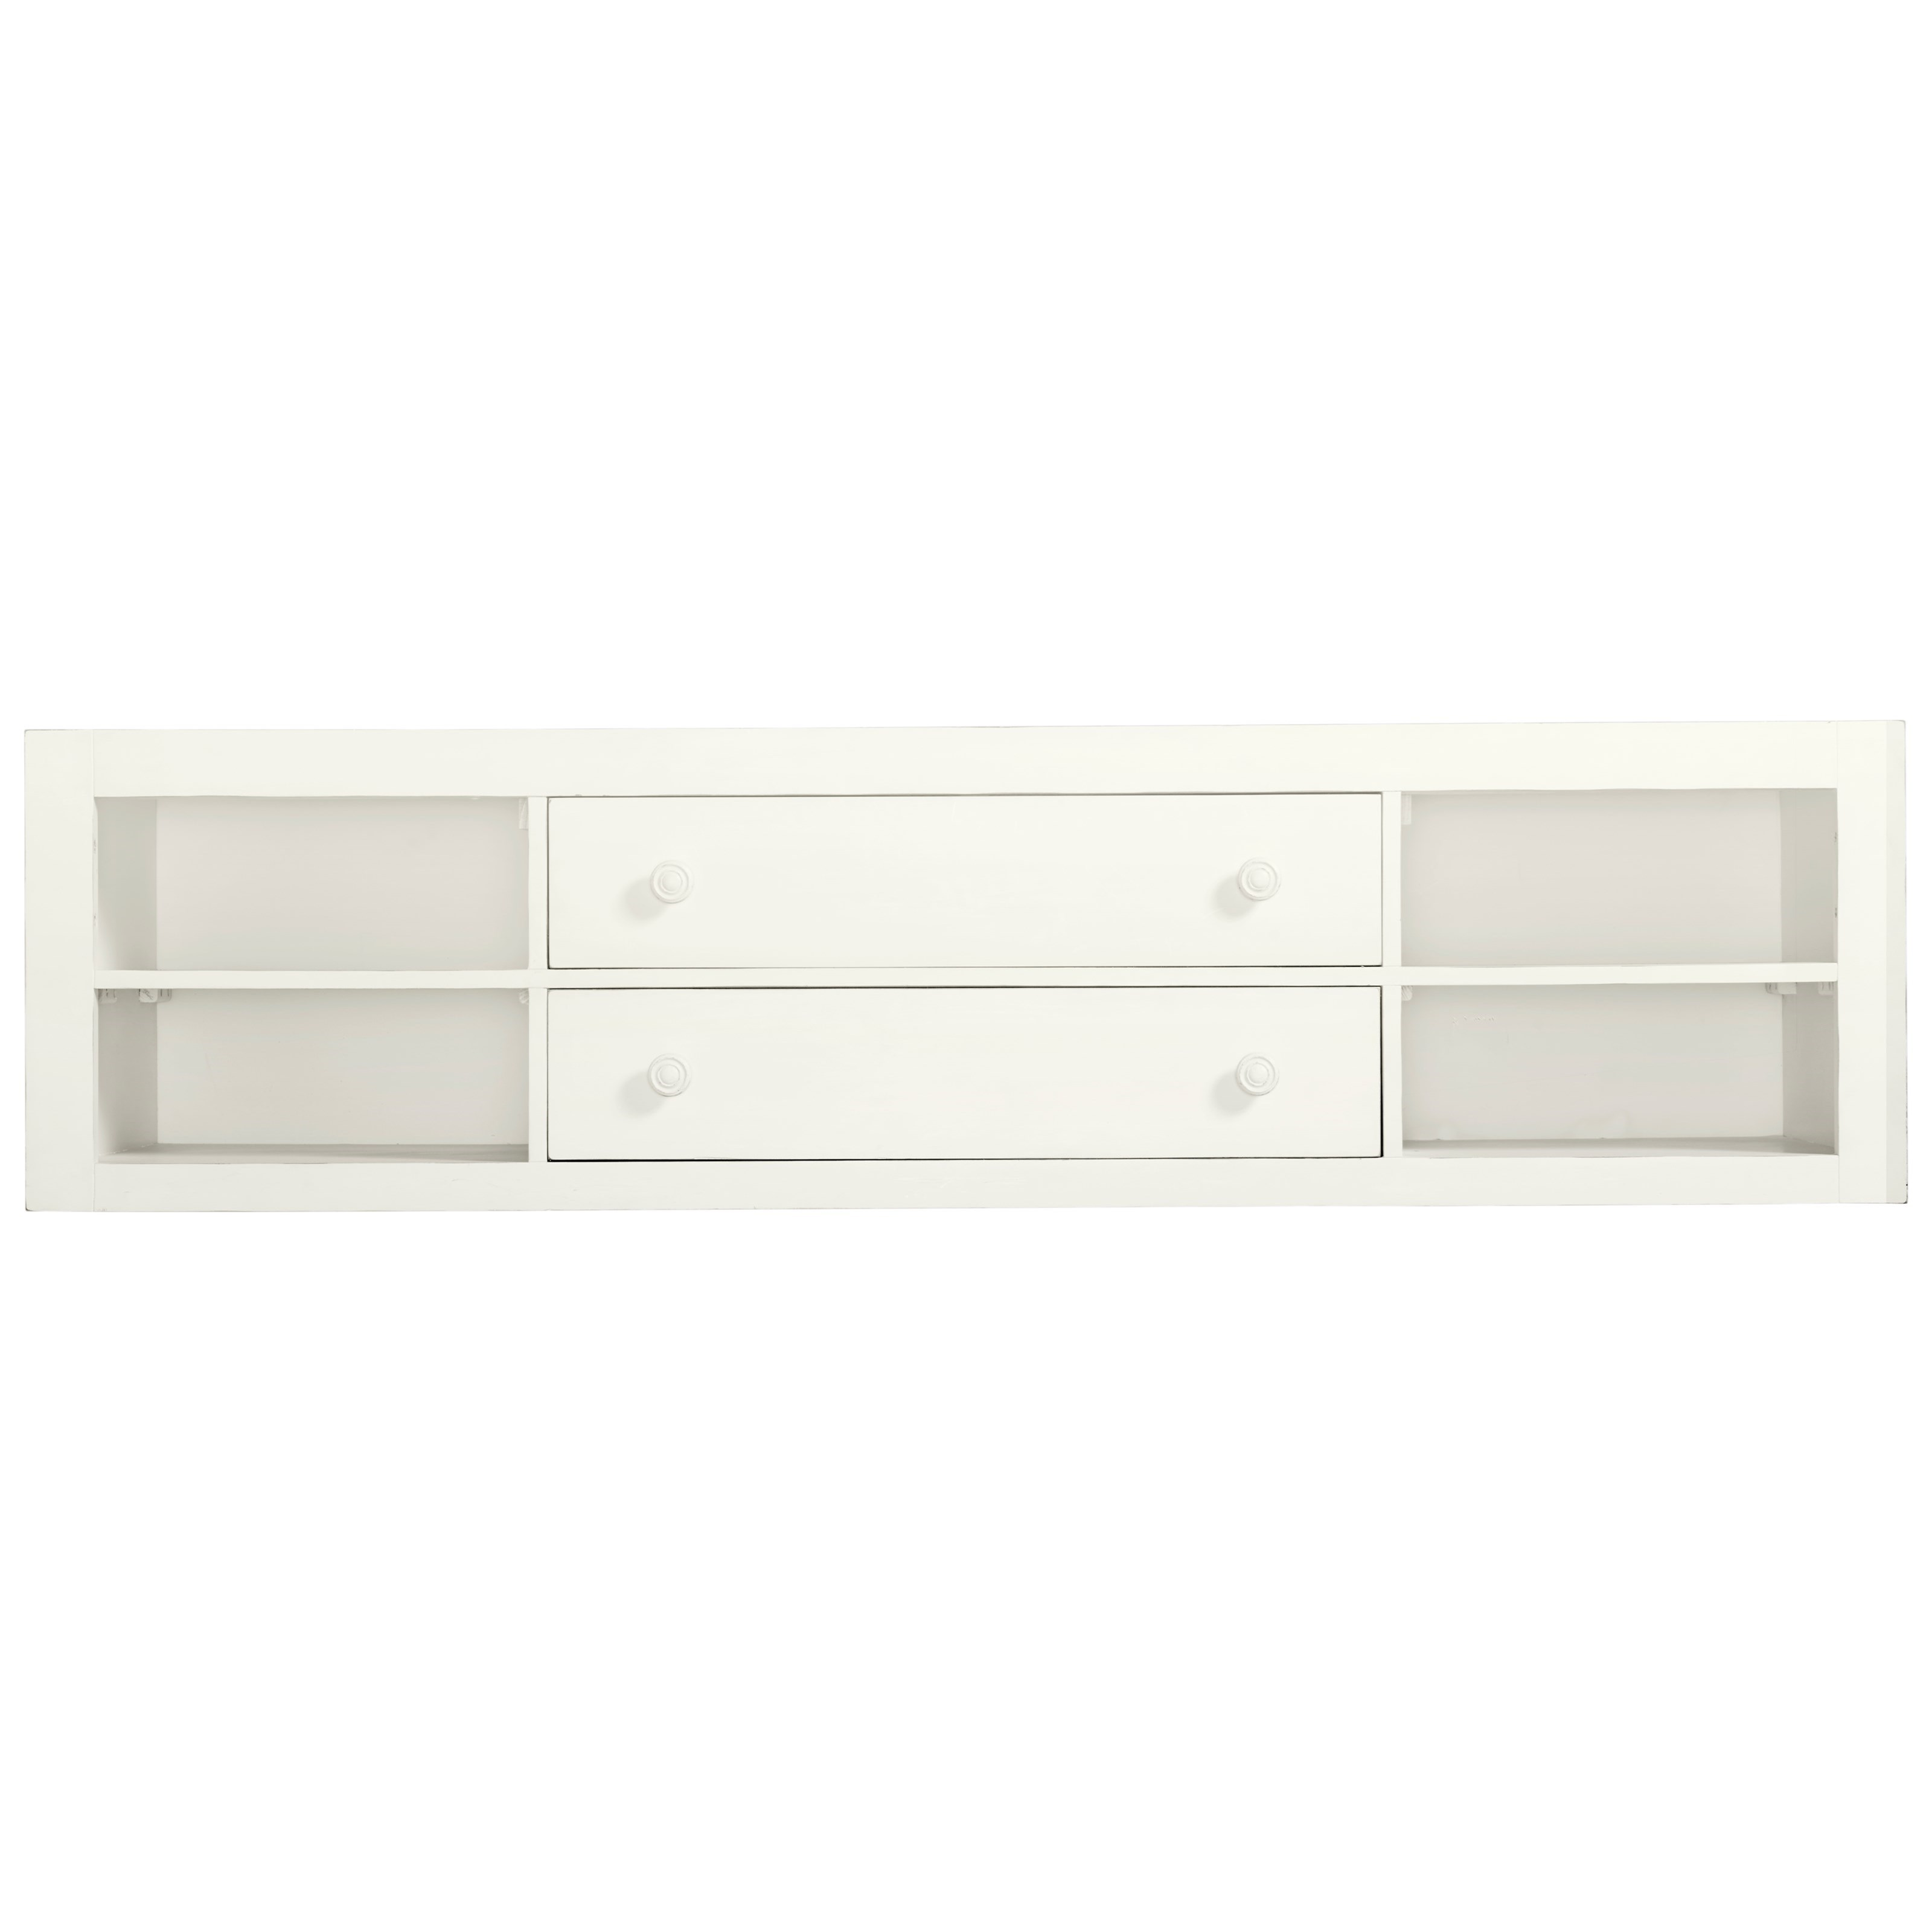 Stone & Leigh Furniture Smiling Hill Underbed Storage - Item Number: 560-23-66